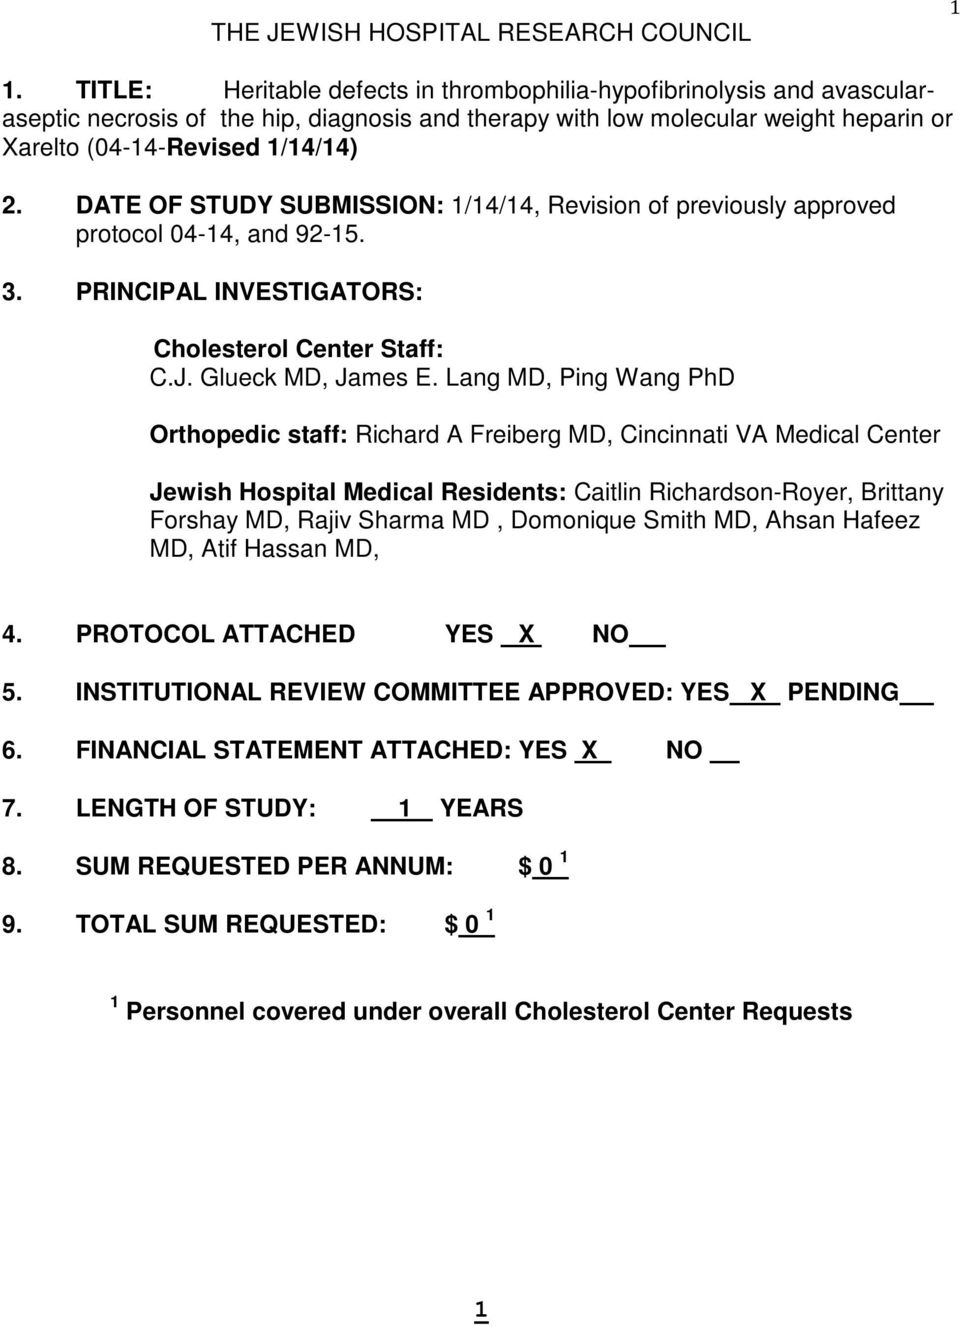 DATE OF STUDY SUBMISSION: 1/14/14, Revision of previously approved protocol 04-14, and 92-15. 3. PRINCIPAL INVESTIGATORS: Cholesterol Center Staff: C.J. Glueck MD, James E.